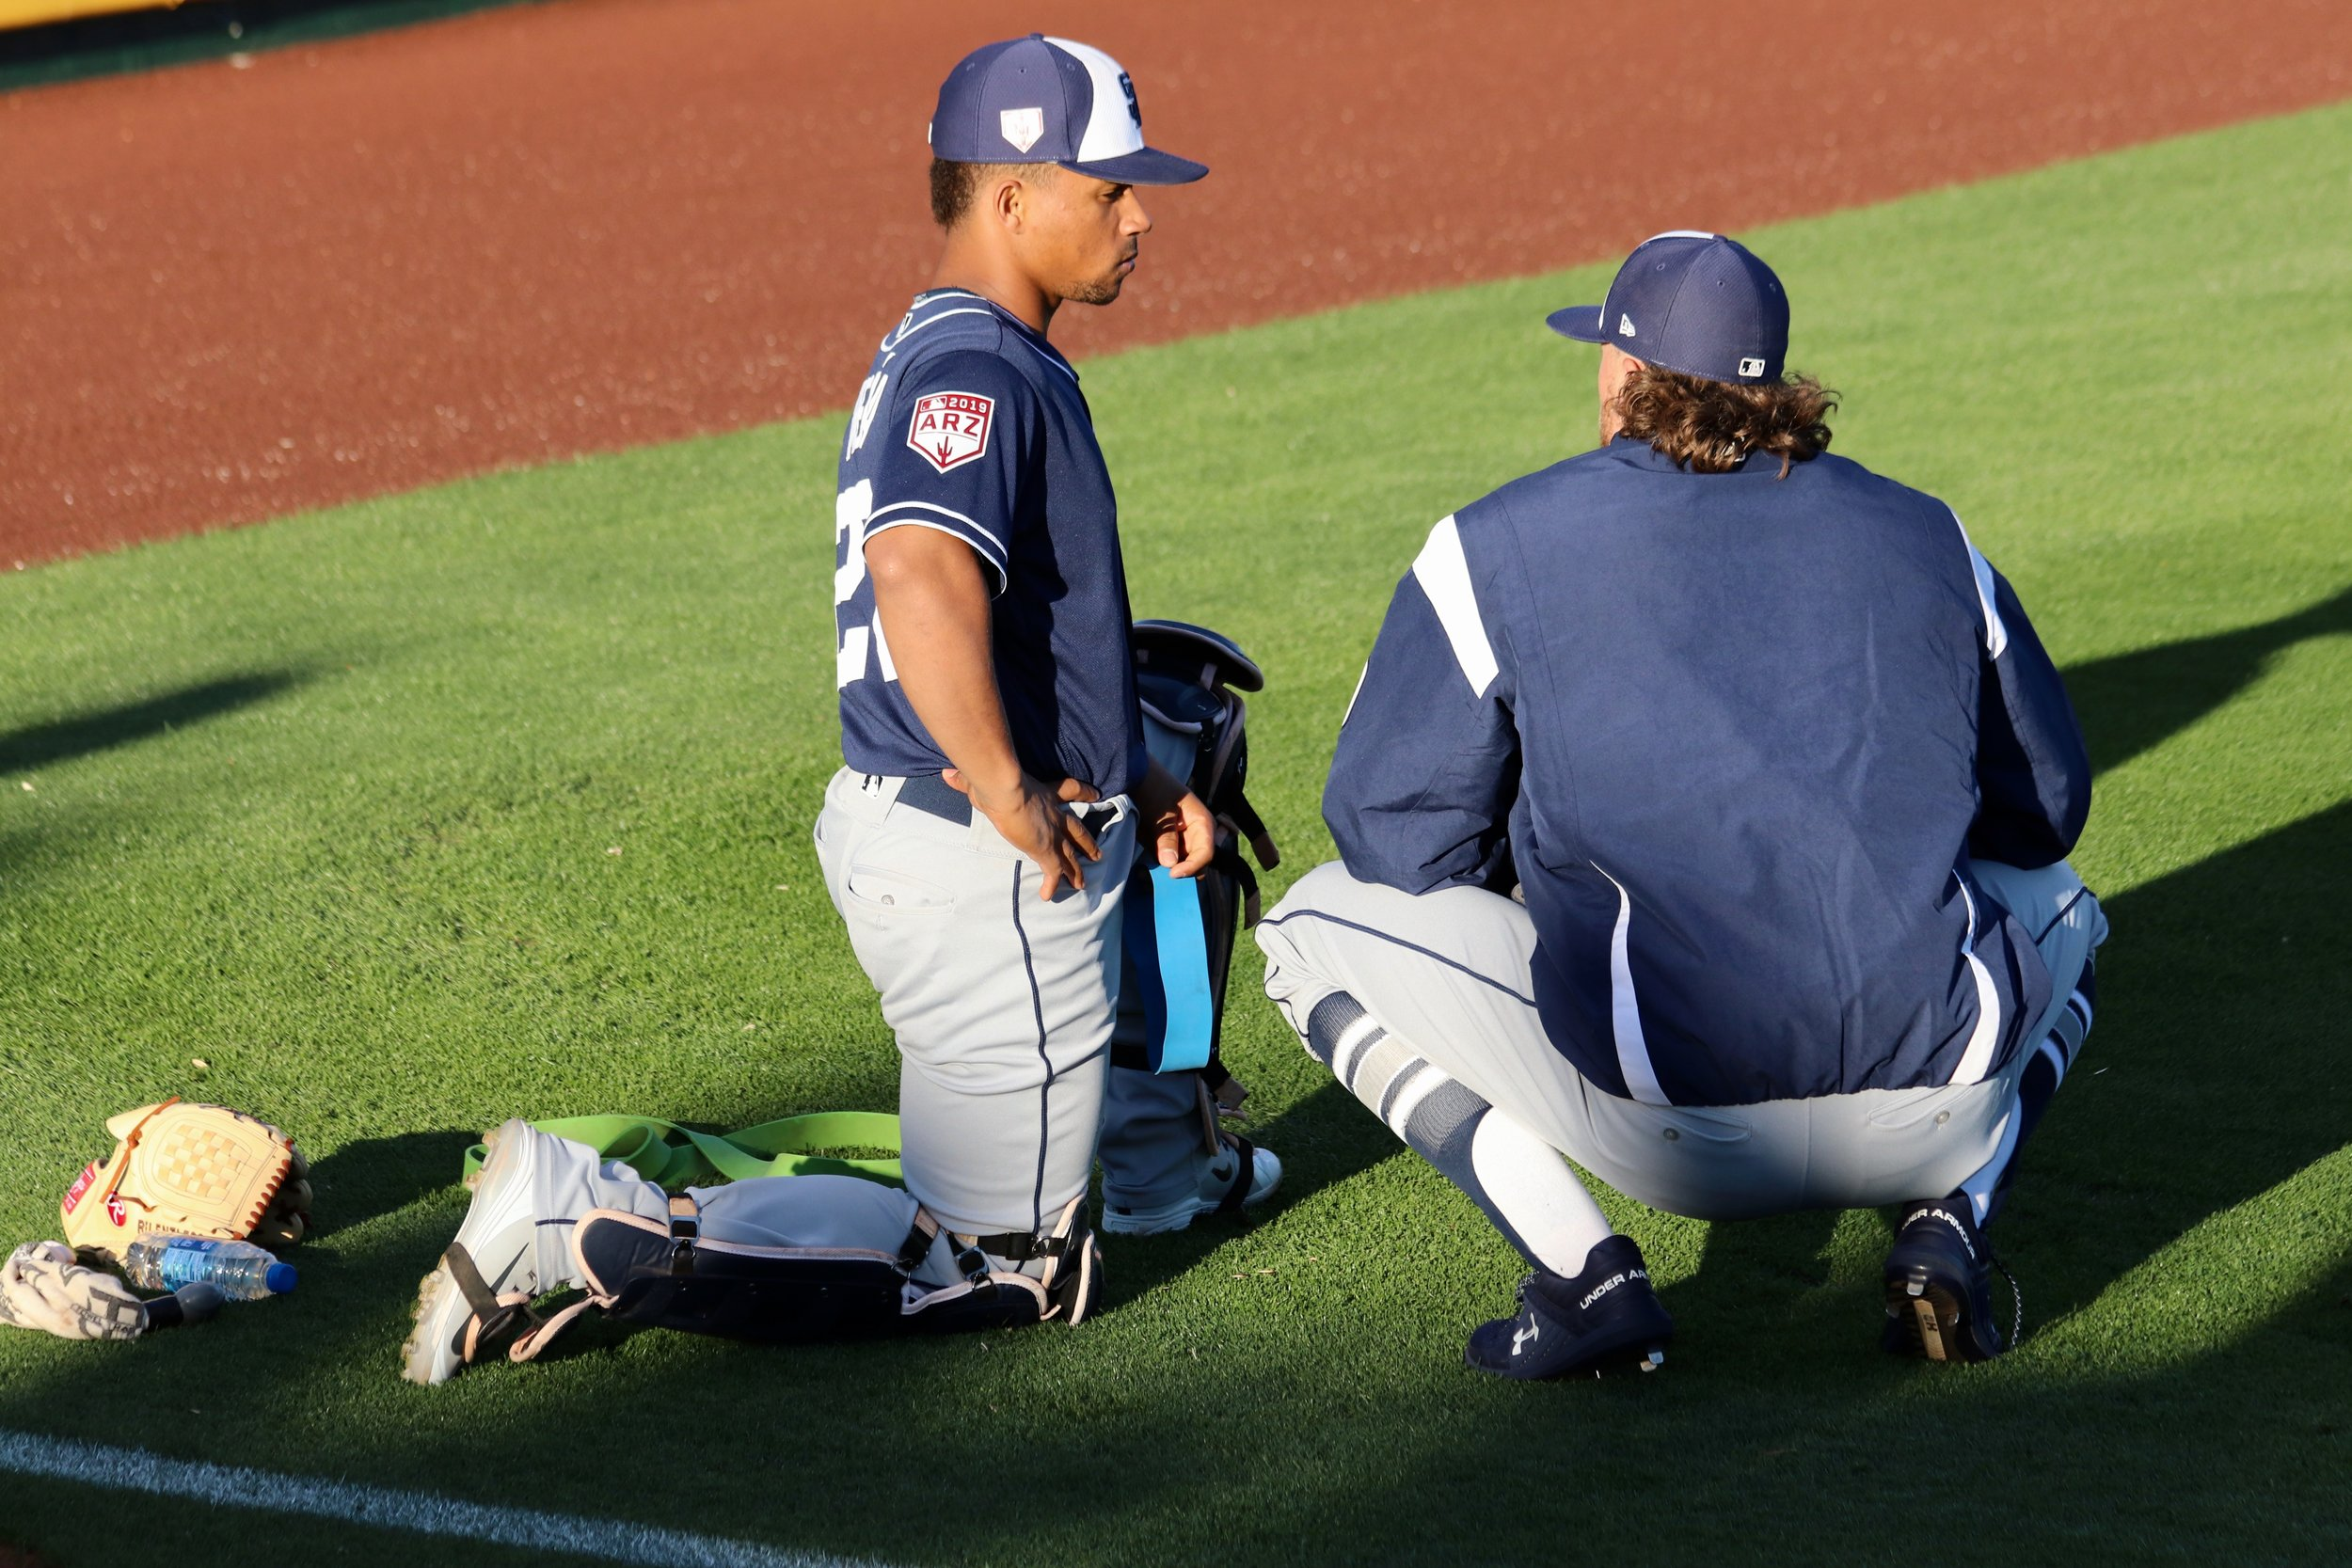 Padres Spring Notebook - Mar. 18, 2019 — Chris Stewart, Andy Green and Chris Paddack weigh in on the rotation. Prospect Luis Patino recounts his strong offseason.